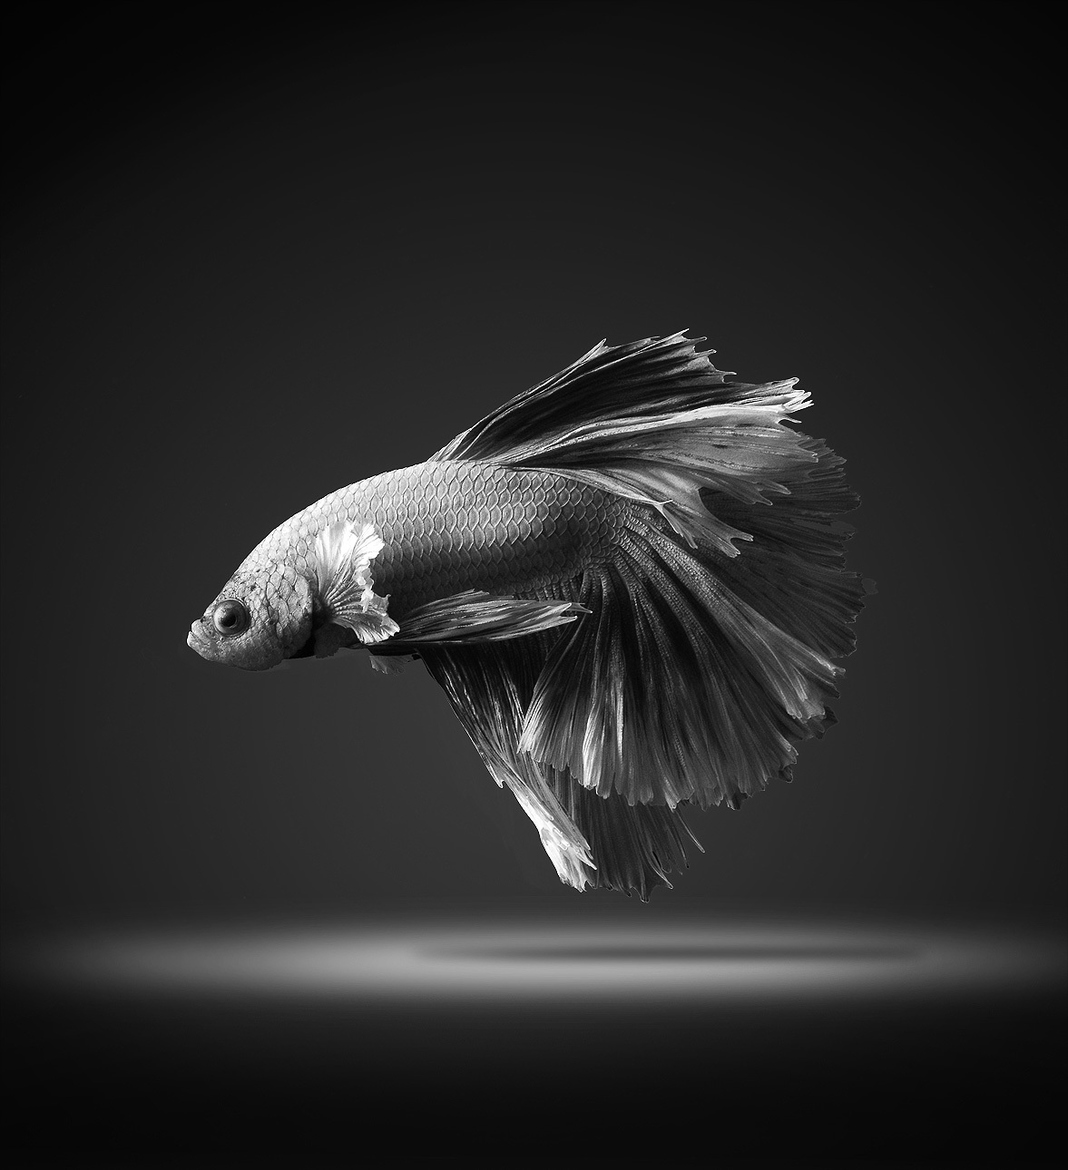 siamese-fighting-fish-visarute-angkatavanich-03